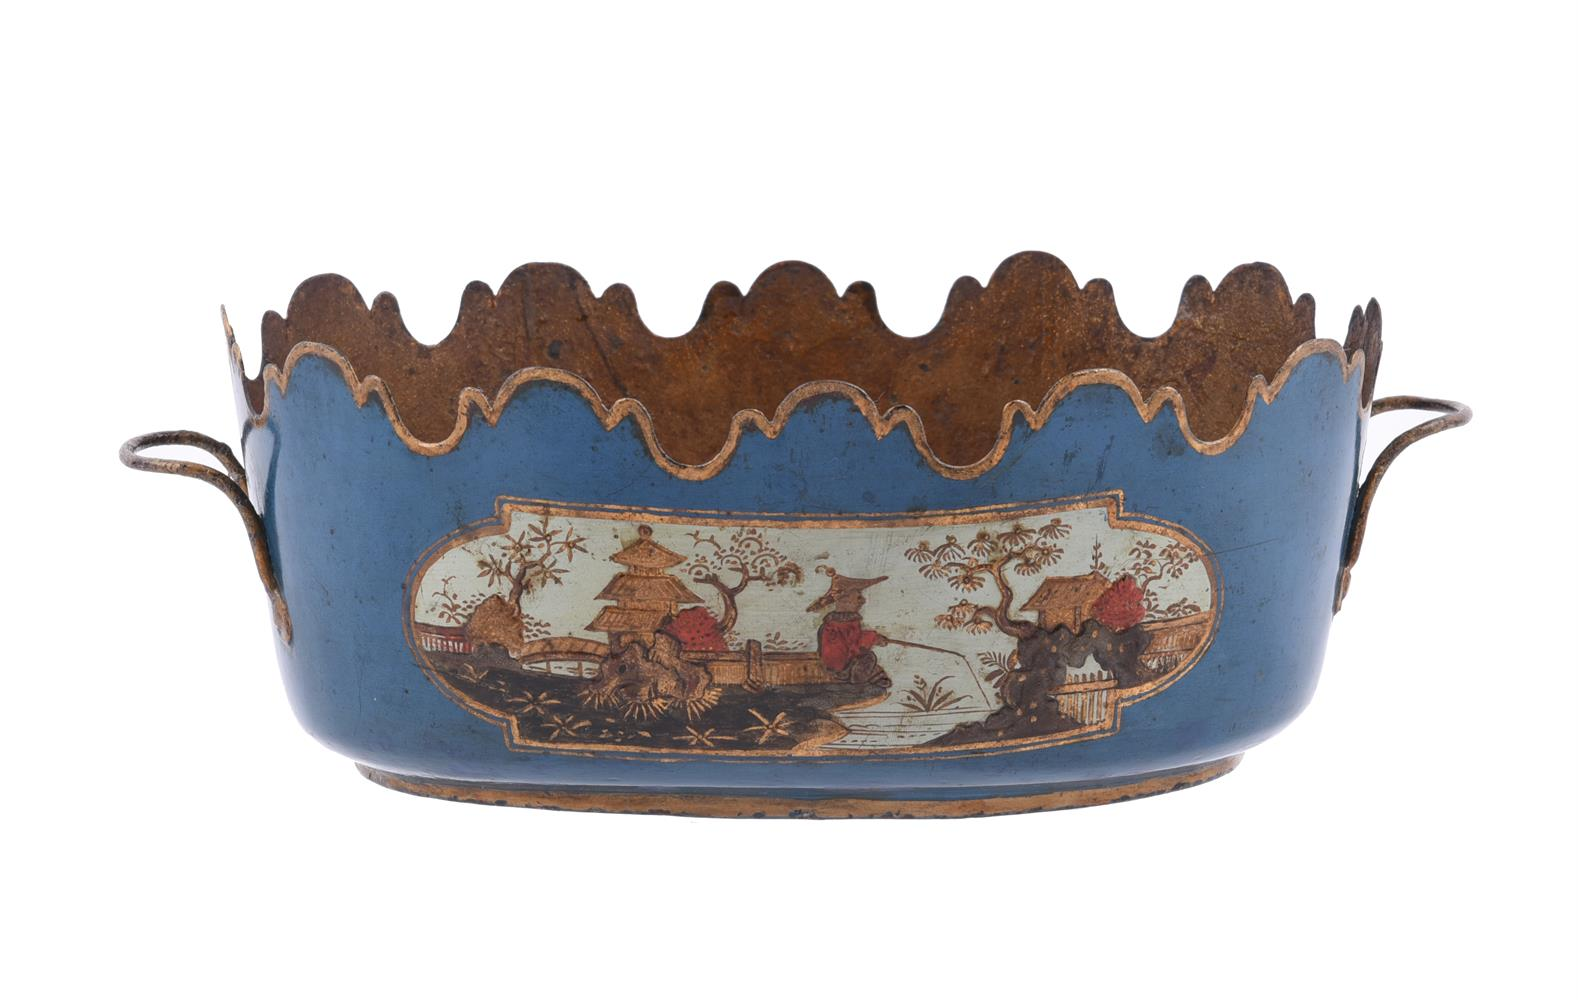 A PAIR OF FRENCH CHINOISERIE TÔLE PEINTE SEAUX À VERRE OR GLASS COOLERS, SECOND HALF 18TH CENTURY - Image 4 of 5